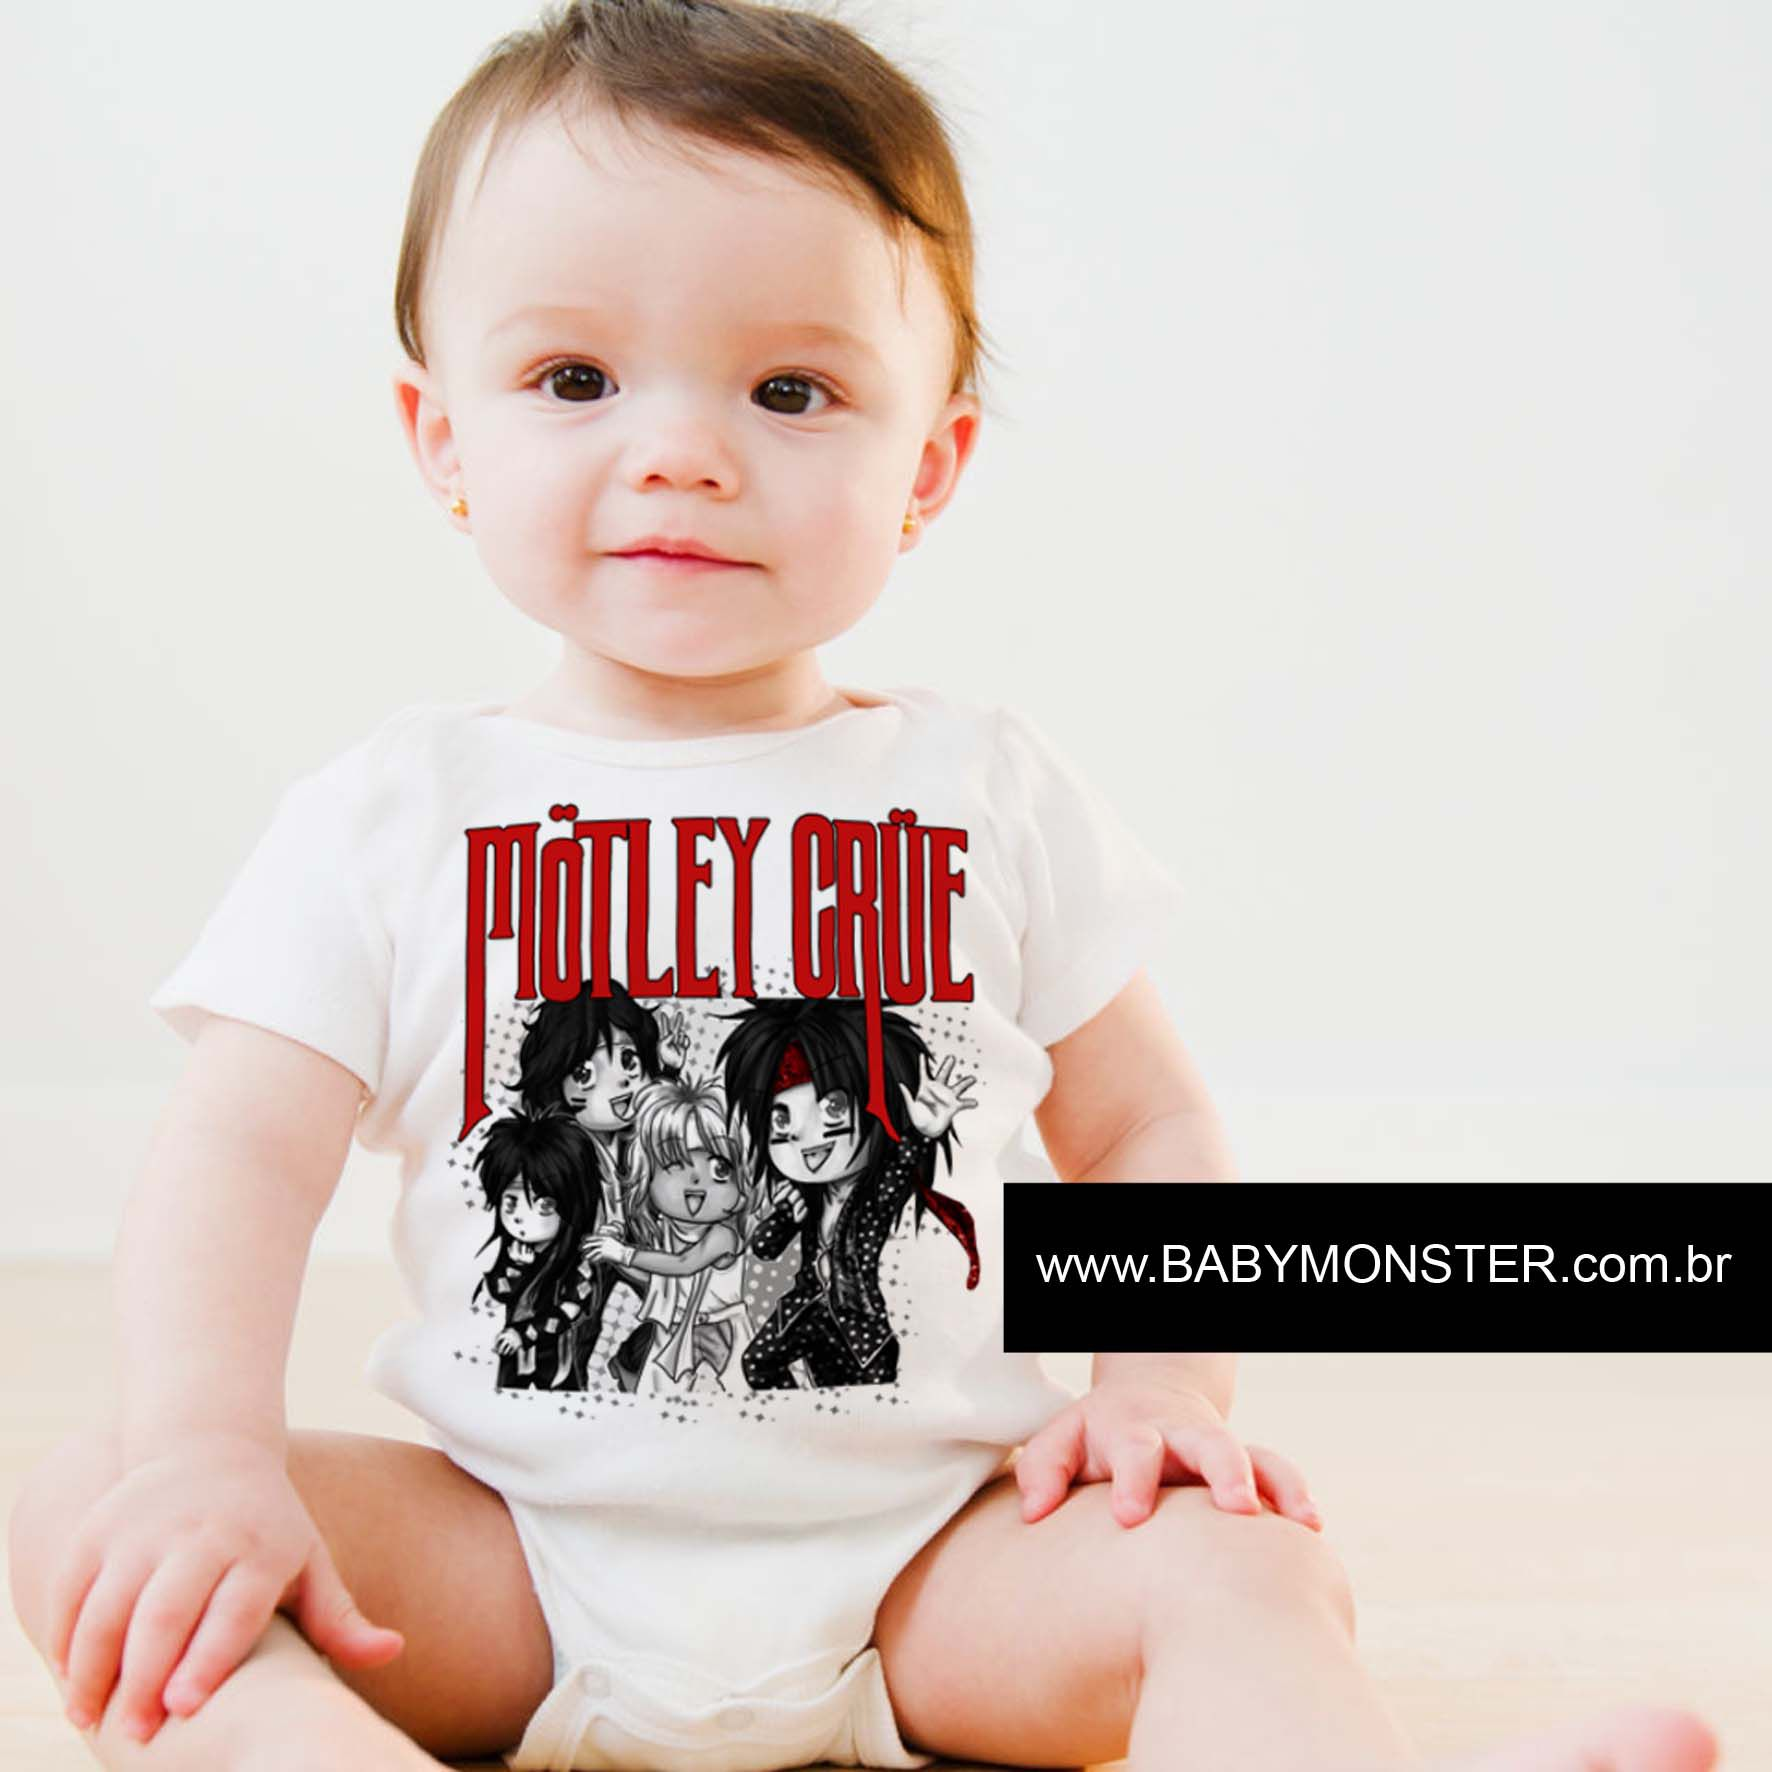 Body Bebe Rock ou Camiseta de  Rock  Motley Crue - White  - Baby Monster - Body Bebe